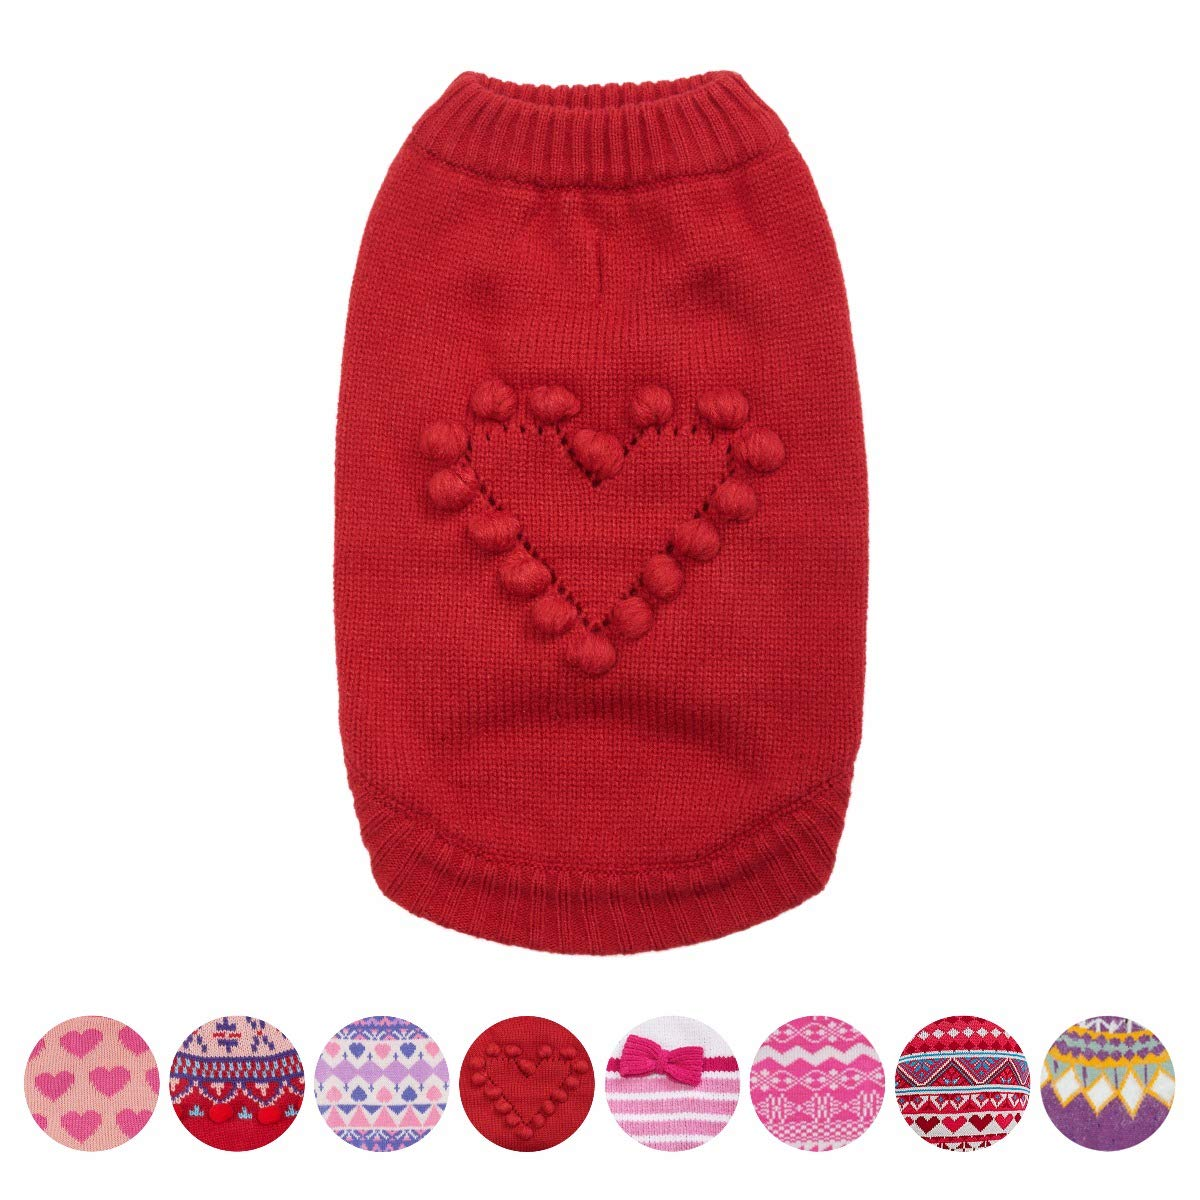 Blueberry Pet for Love of Pets - Red Heart Designer Dog Sweater, Back Length 8'', Pack of 1 Clothes for Dogs by Blueberry Pet